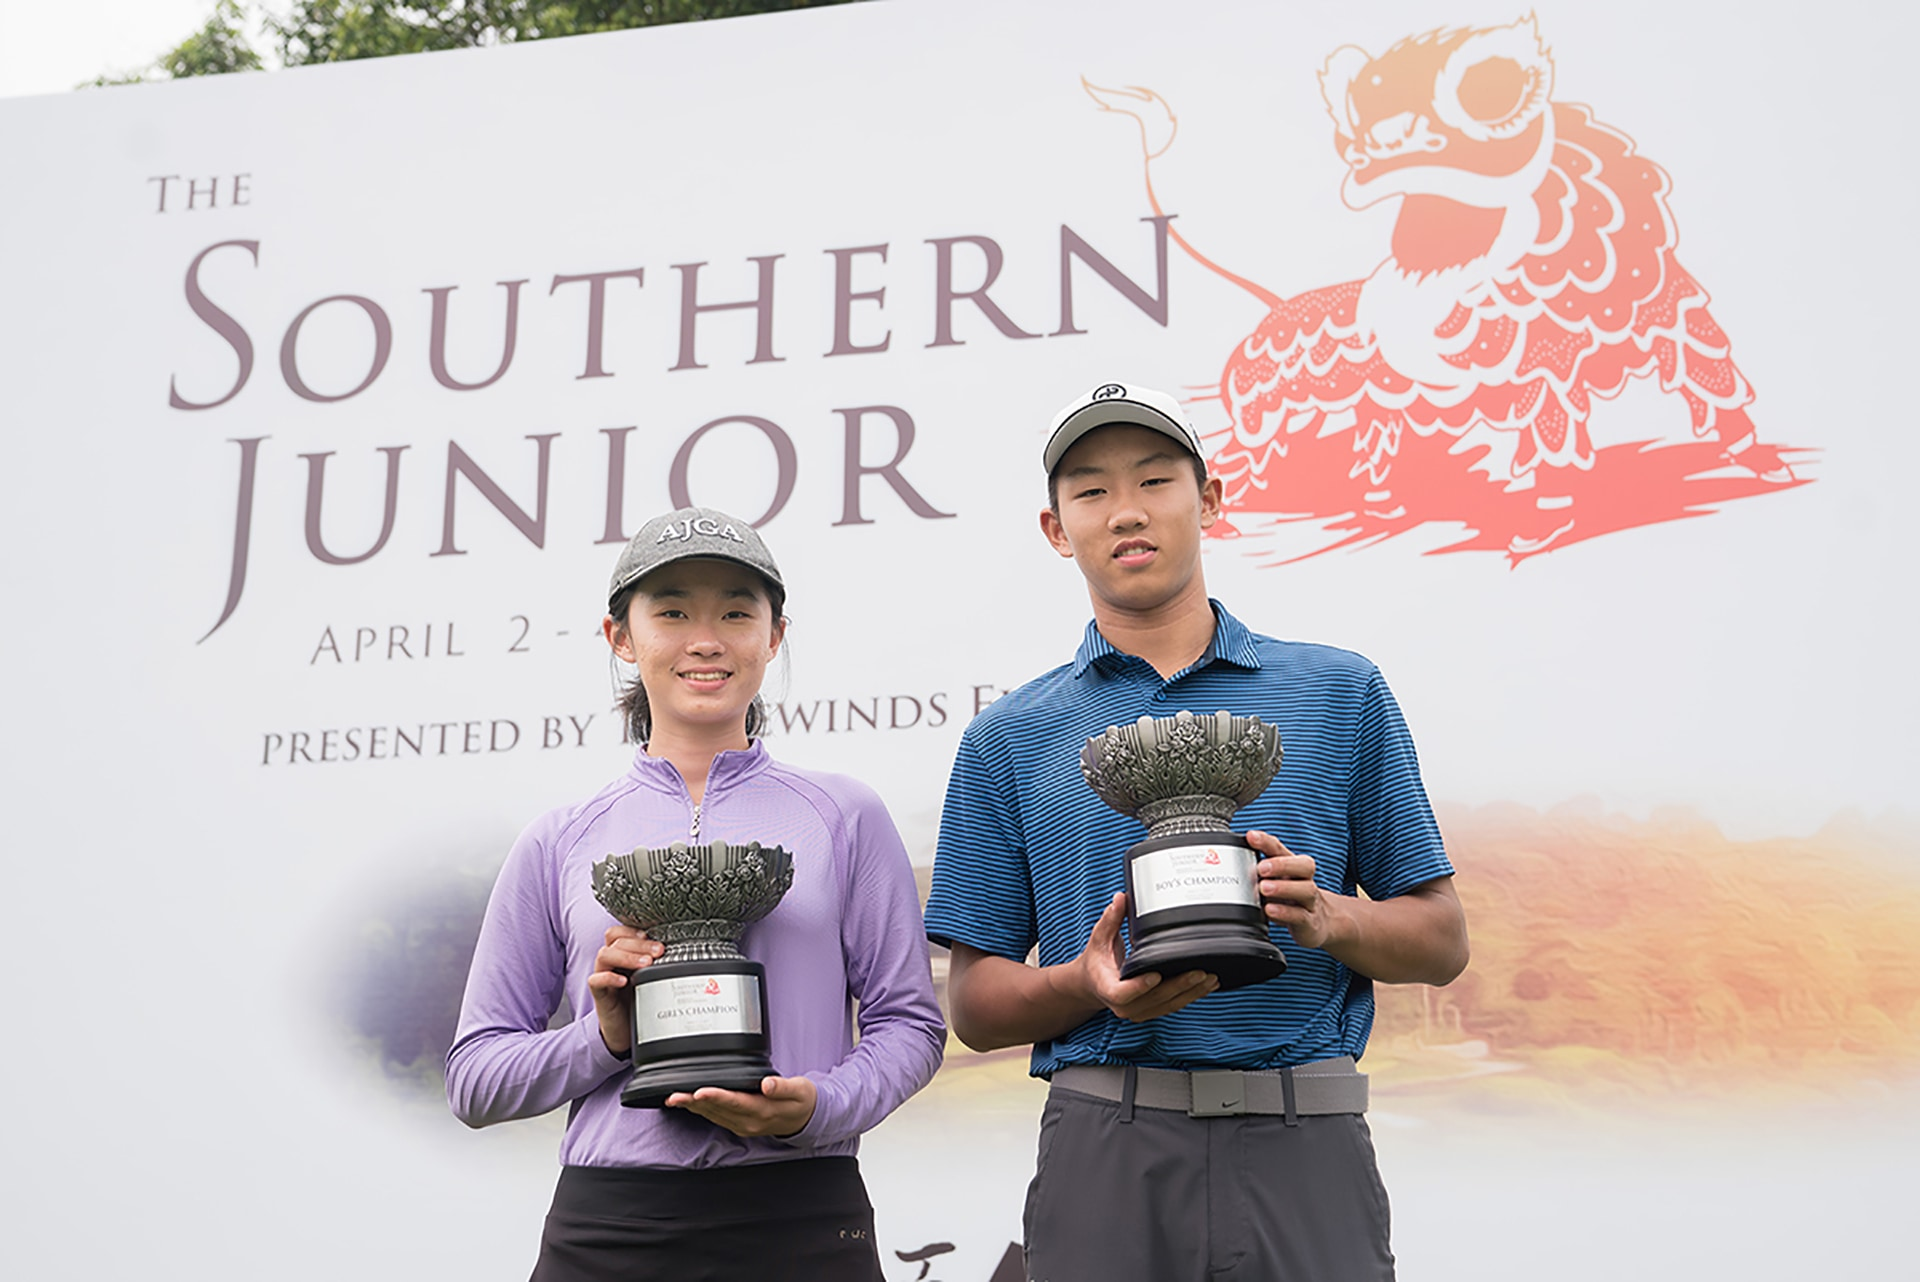 The Southern Junior